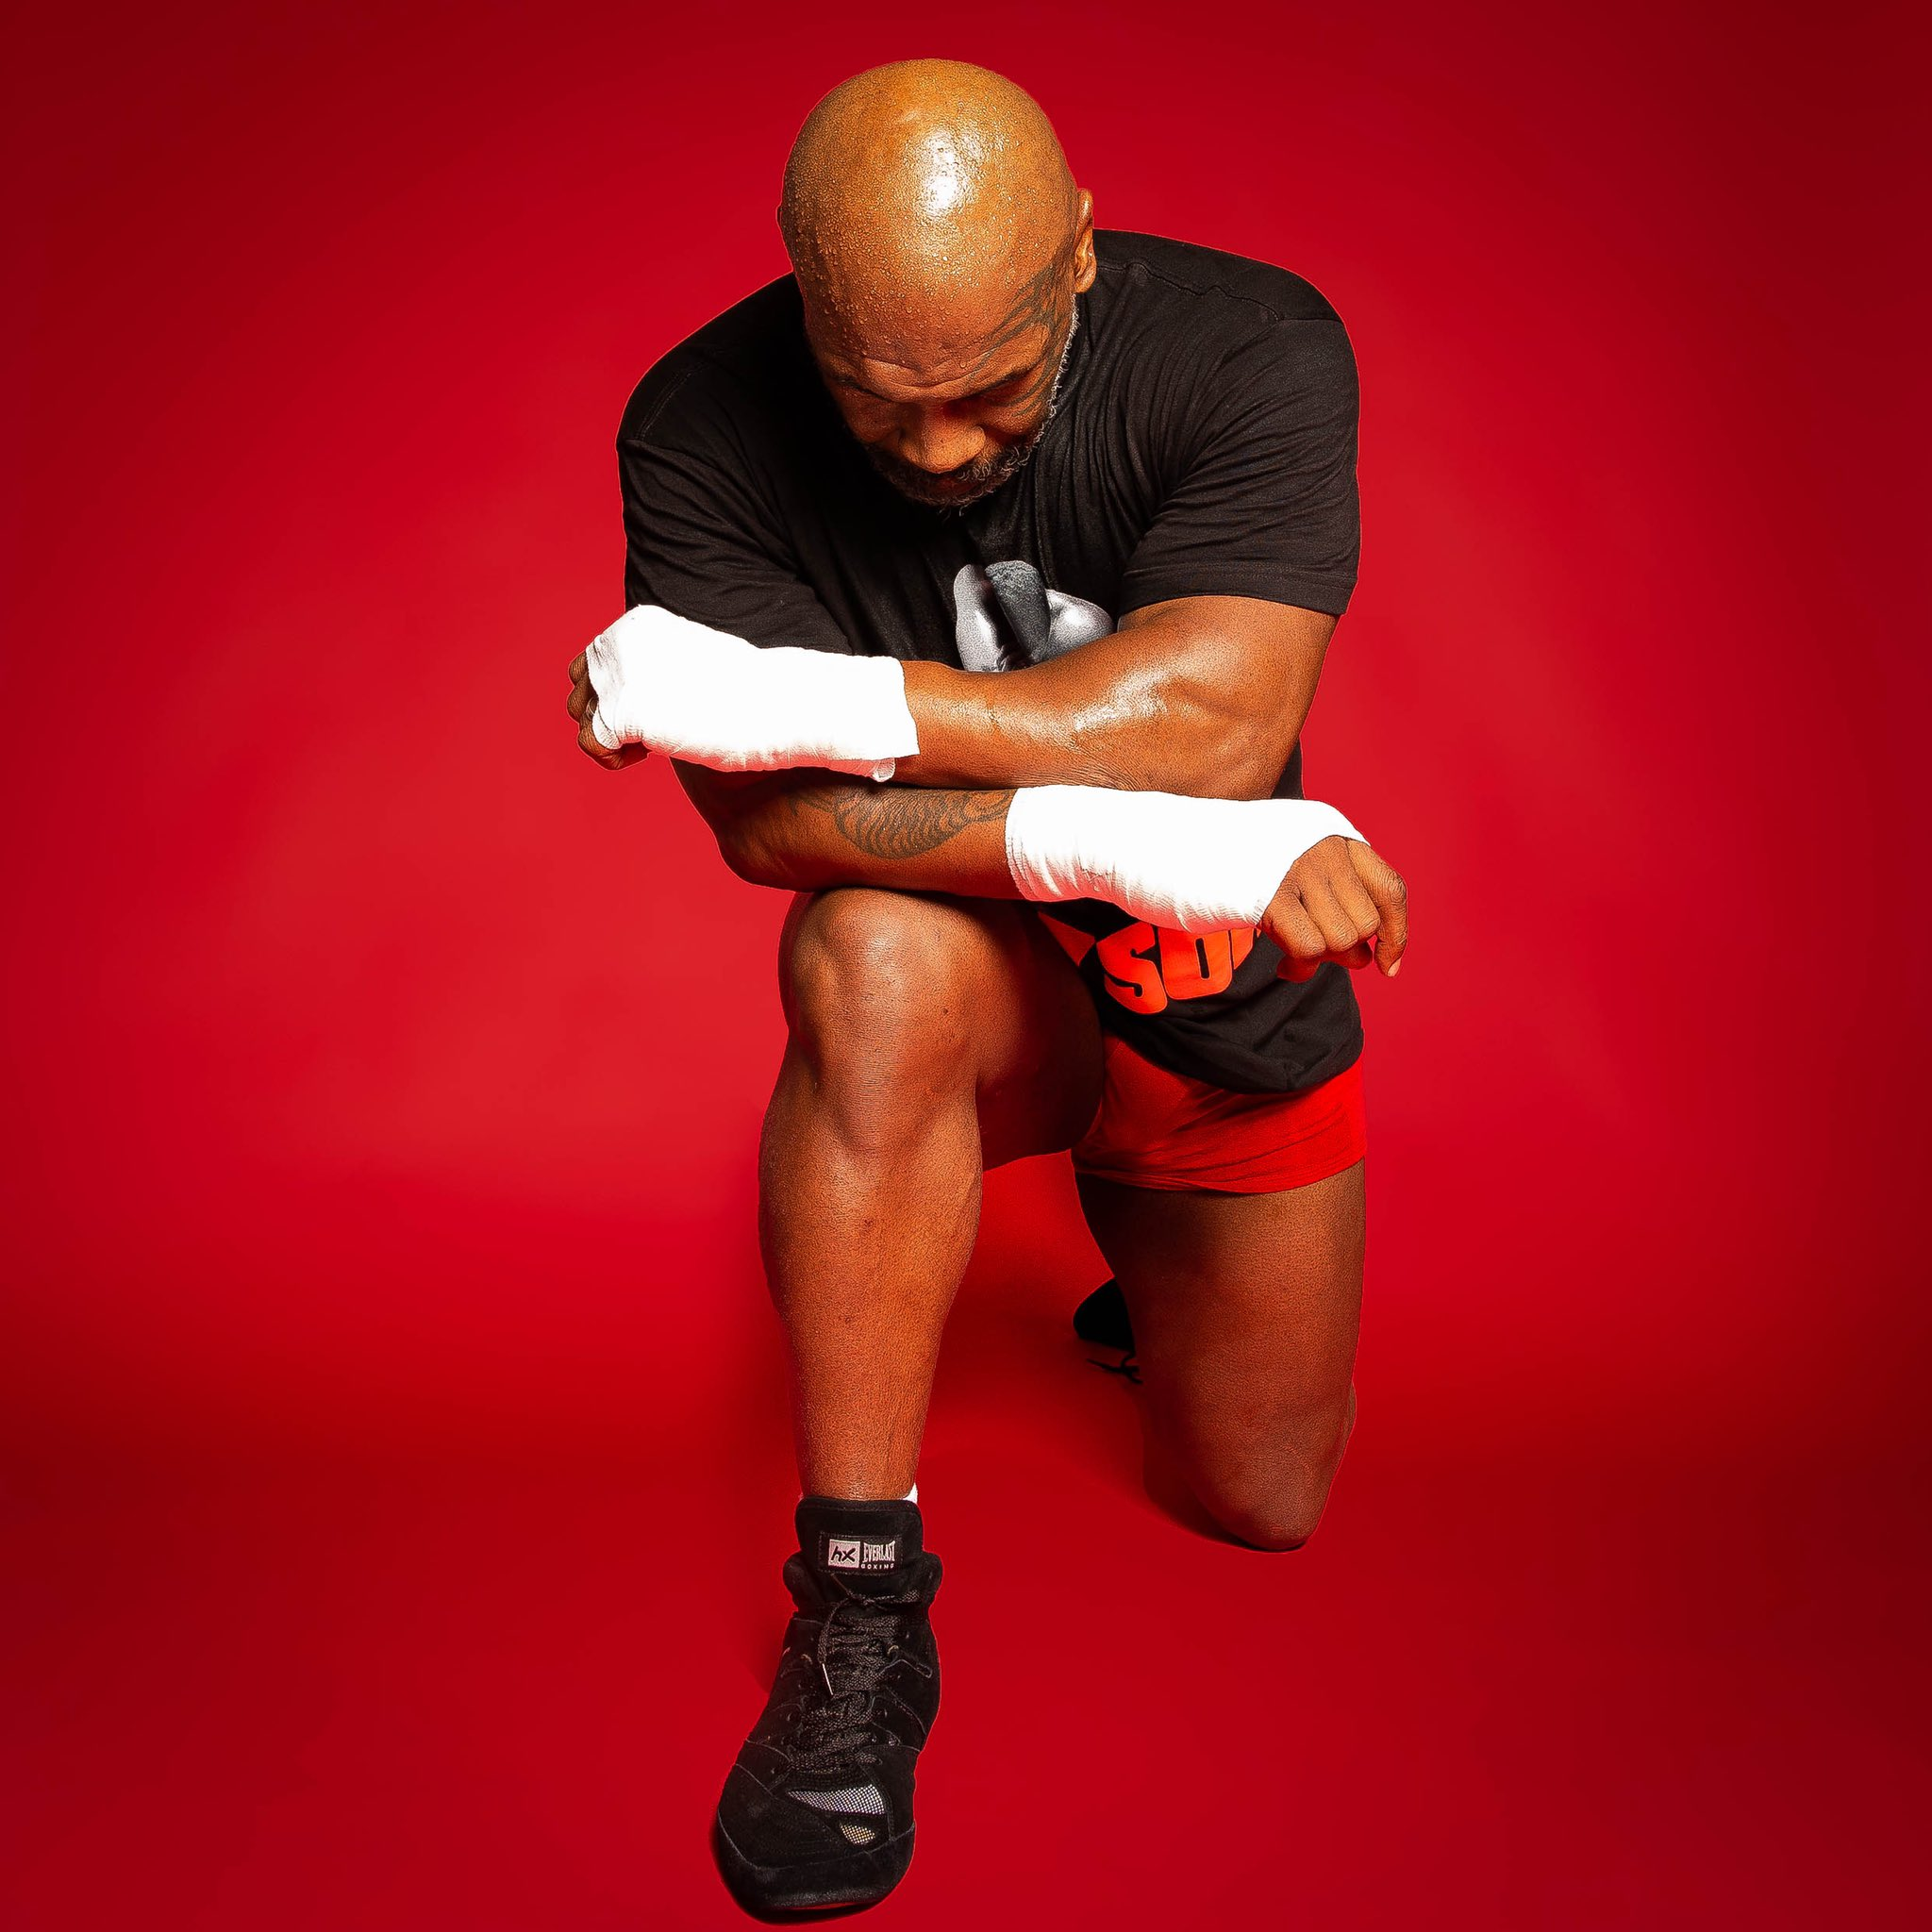 Former World heavyweight champion Mike Tyson turns a year older today. Happy 54th Birthday!